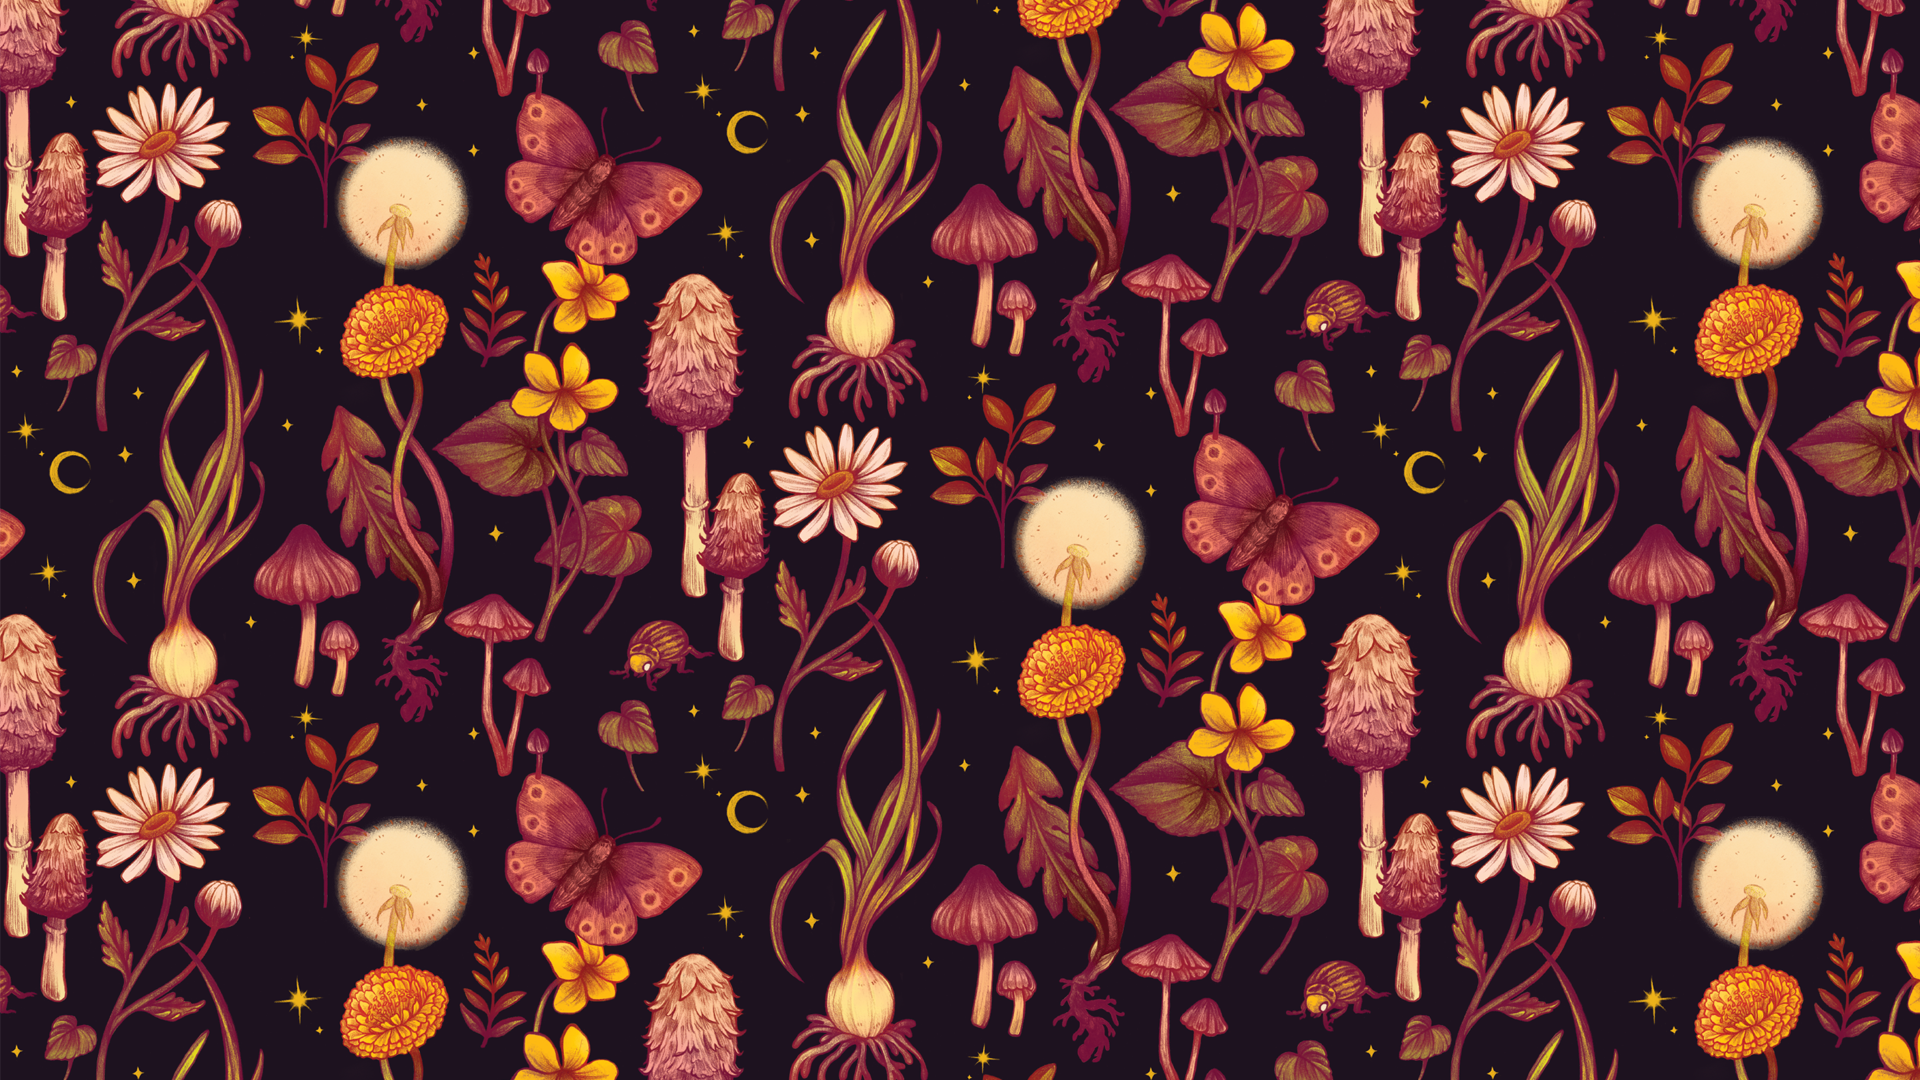 A pattern of brightly colored plants, mushrooms and insects on a dark purple background. This pattern includes spring onions, yellow violets, dandelions, shaggy ink cap mushrooms, inocybe mushrooms, oxeye daisies, potato beetles, and buckeye moths.